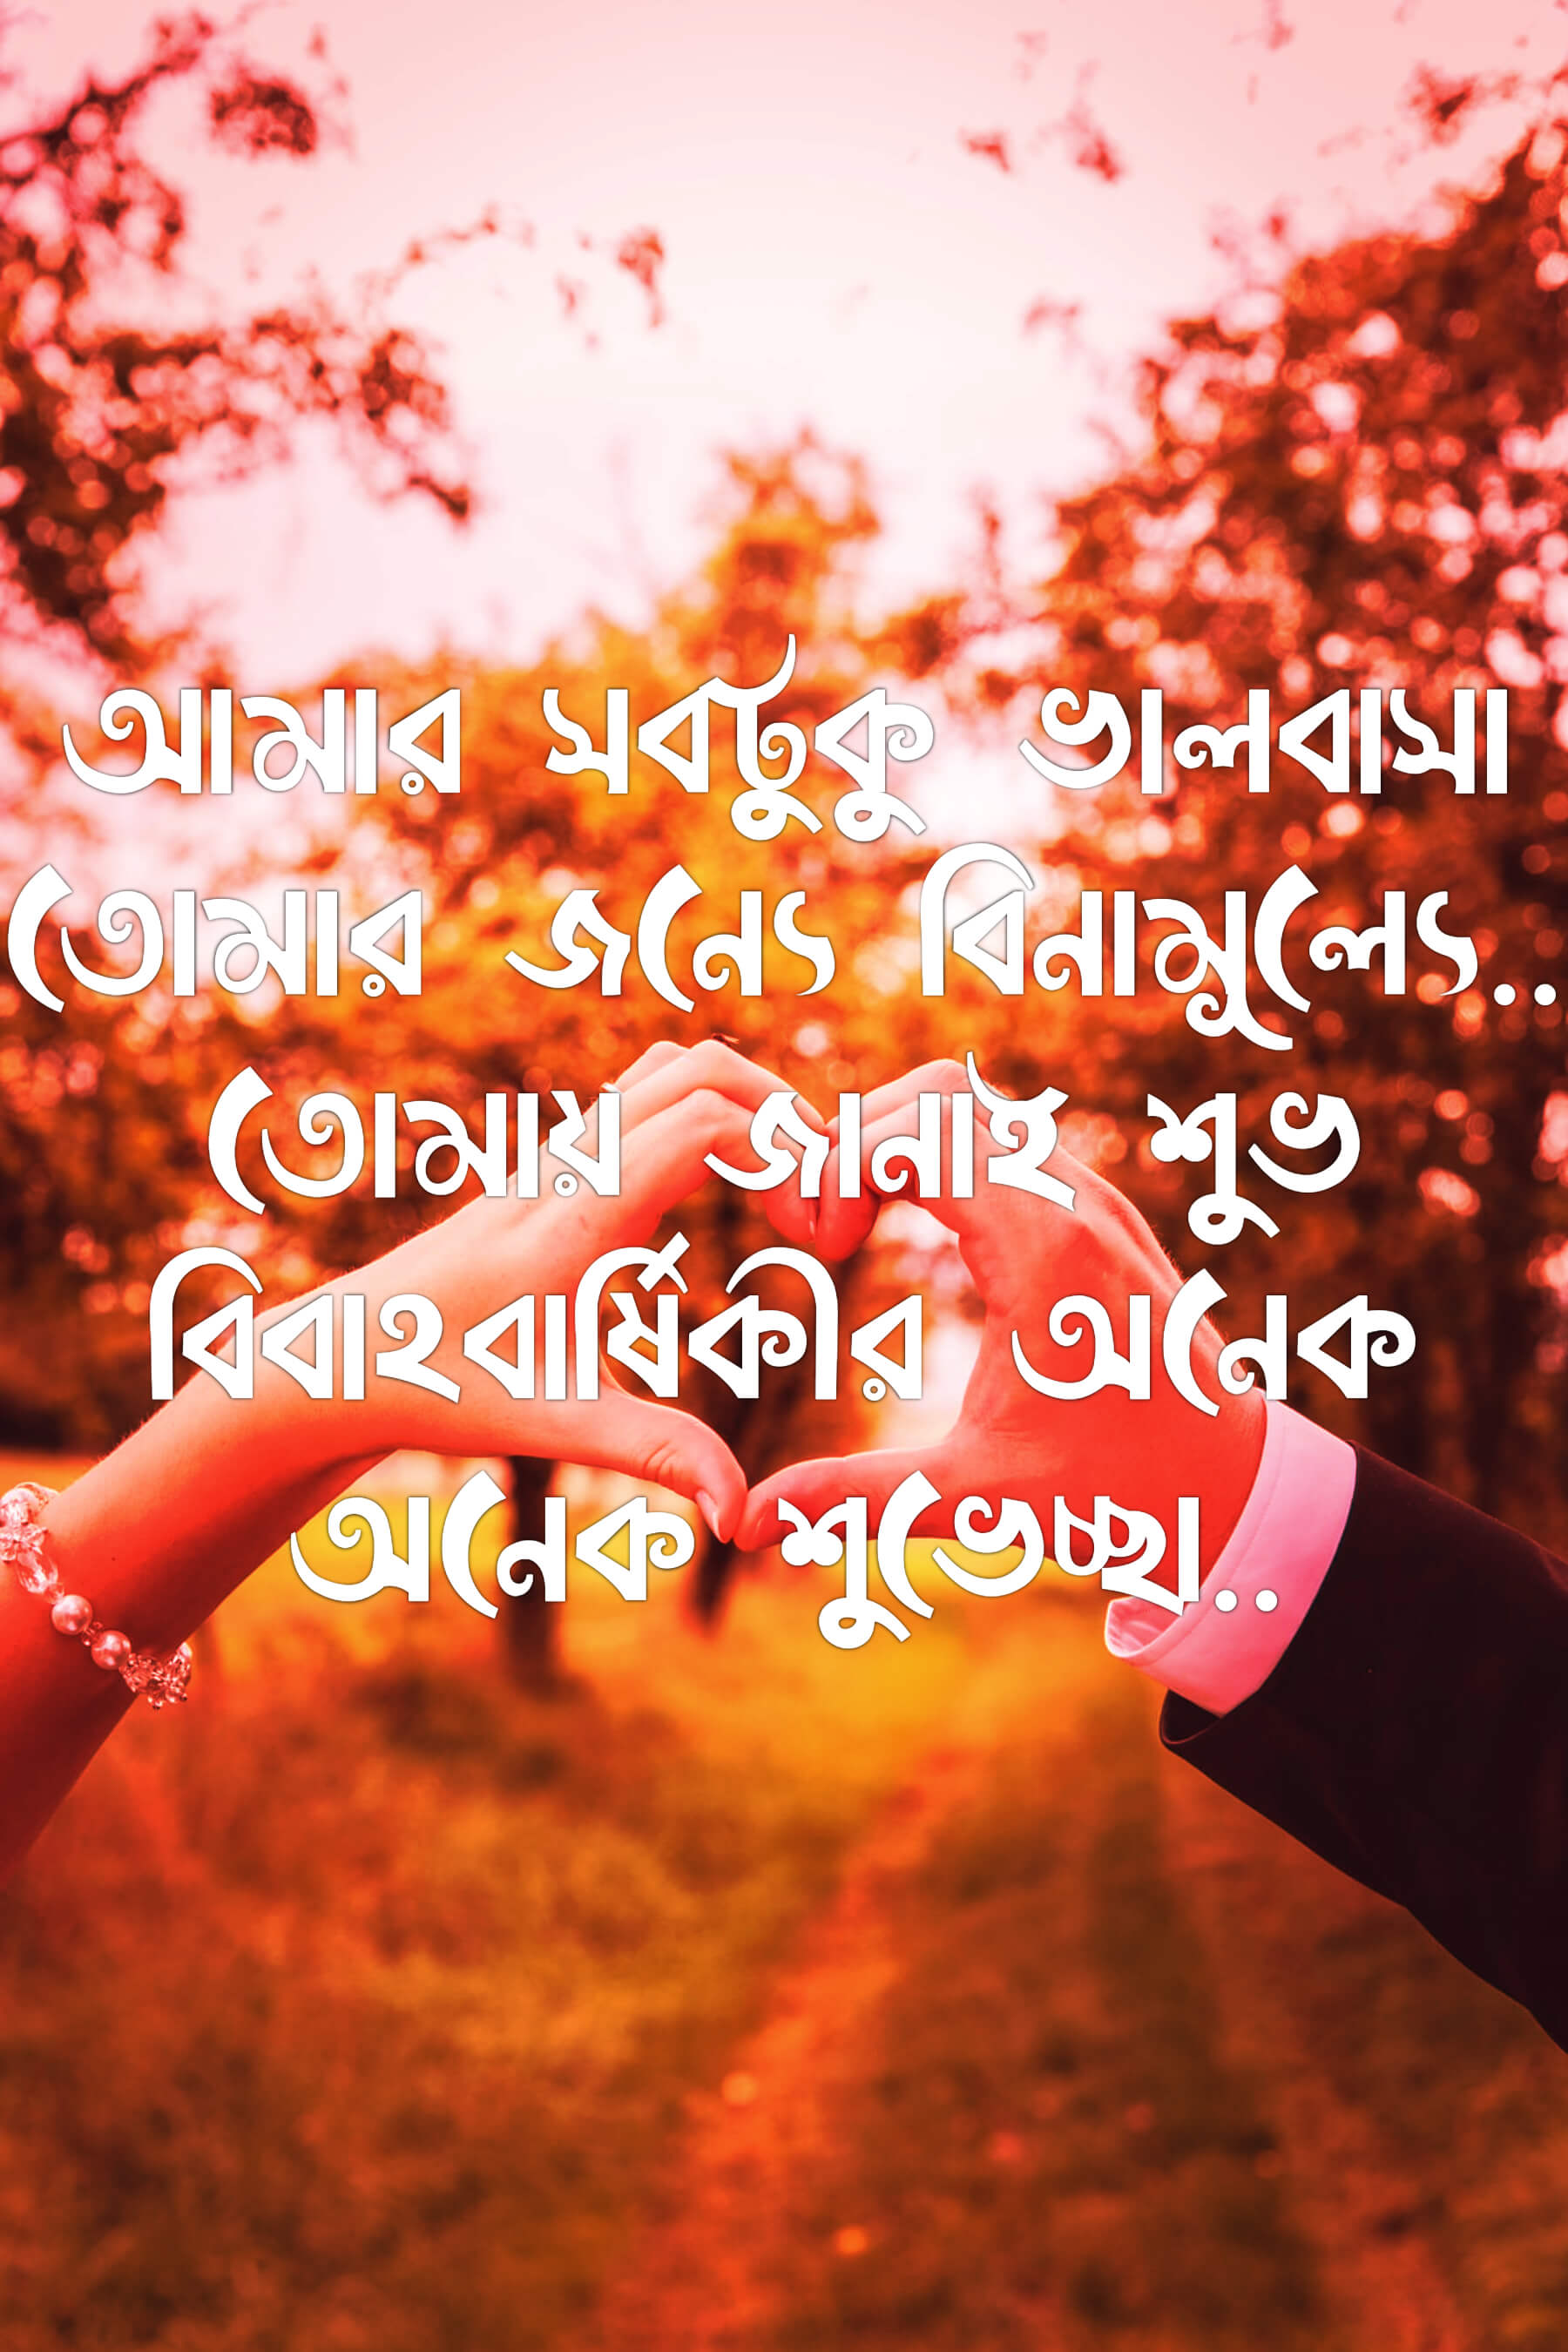 bangla bou er jonne anniversary message